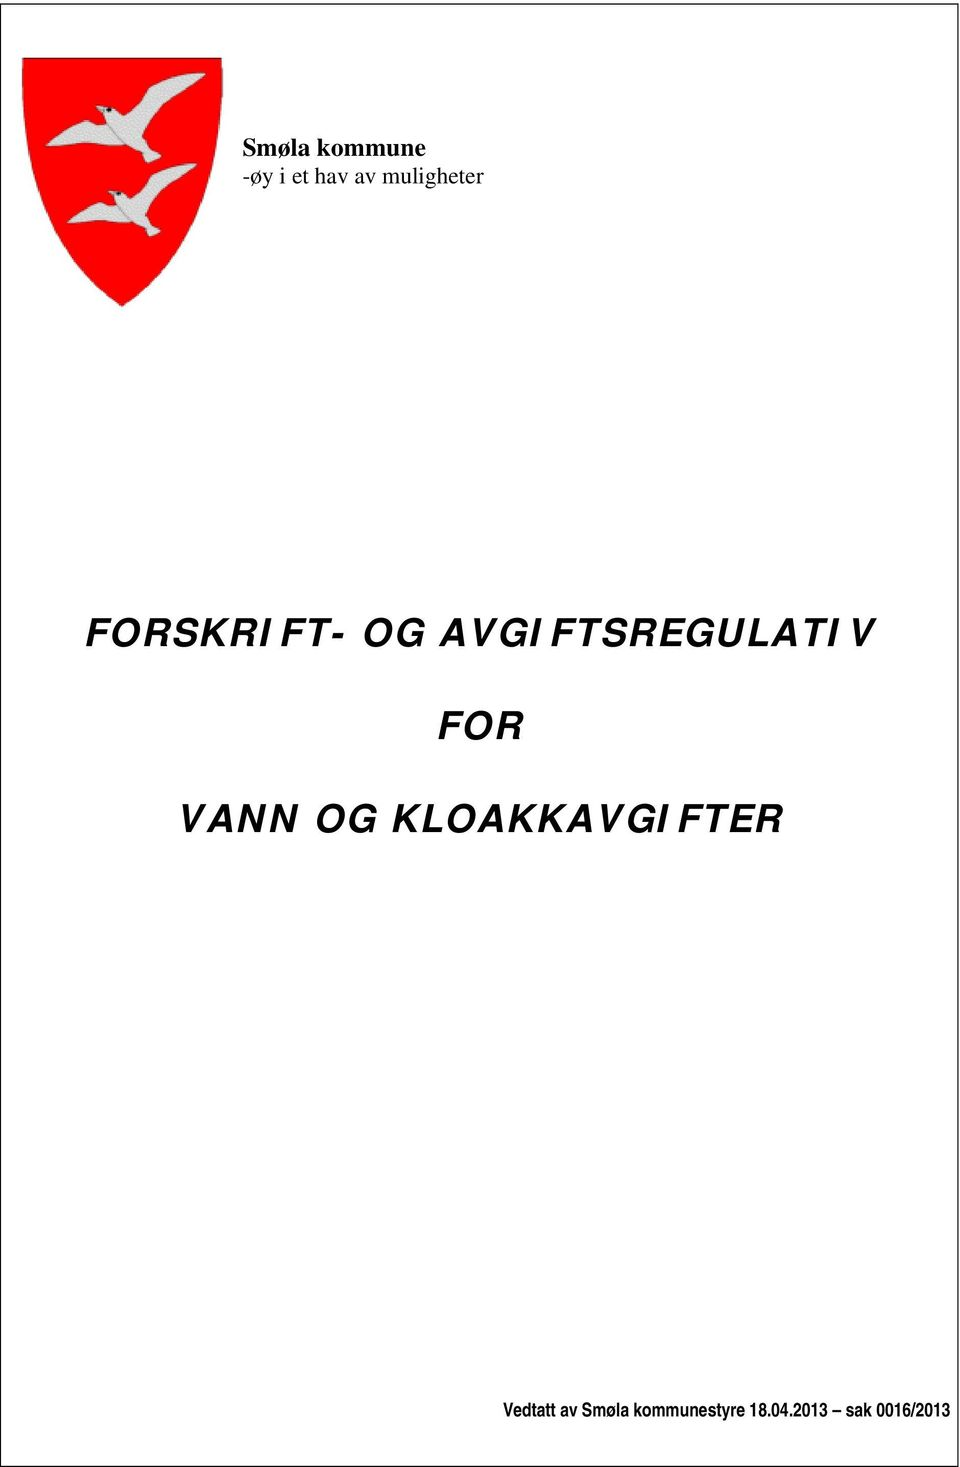 AVGIFTSREGULATIV FOR VANN OG